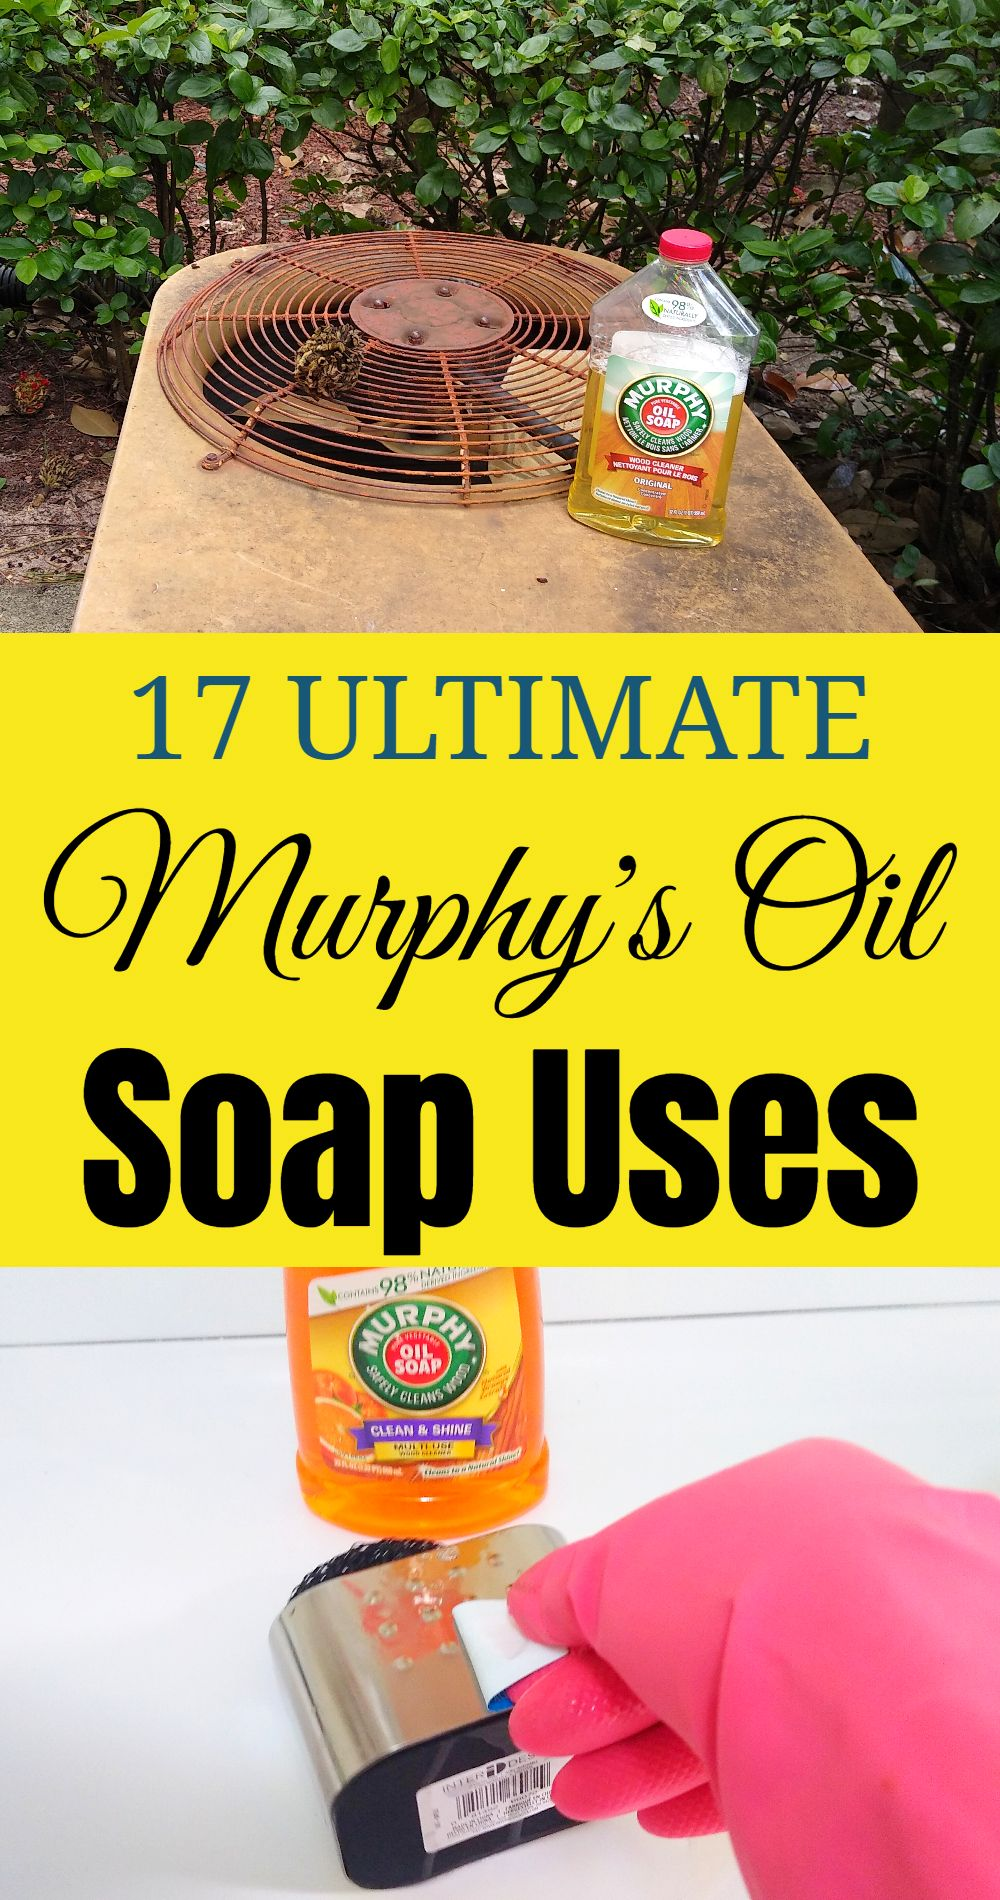 Wonderful Uses Of Murphy's Oil Soap-Snippets Through The ...